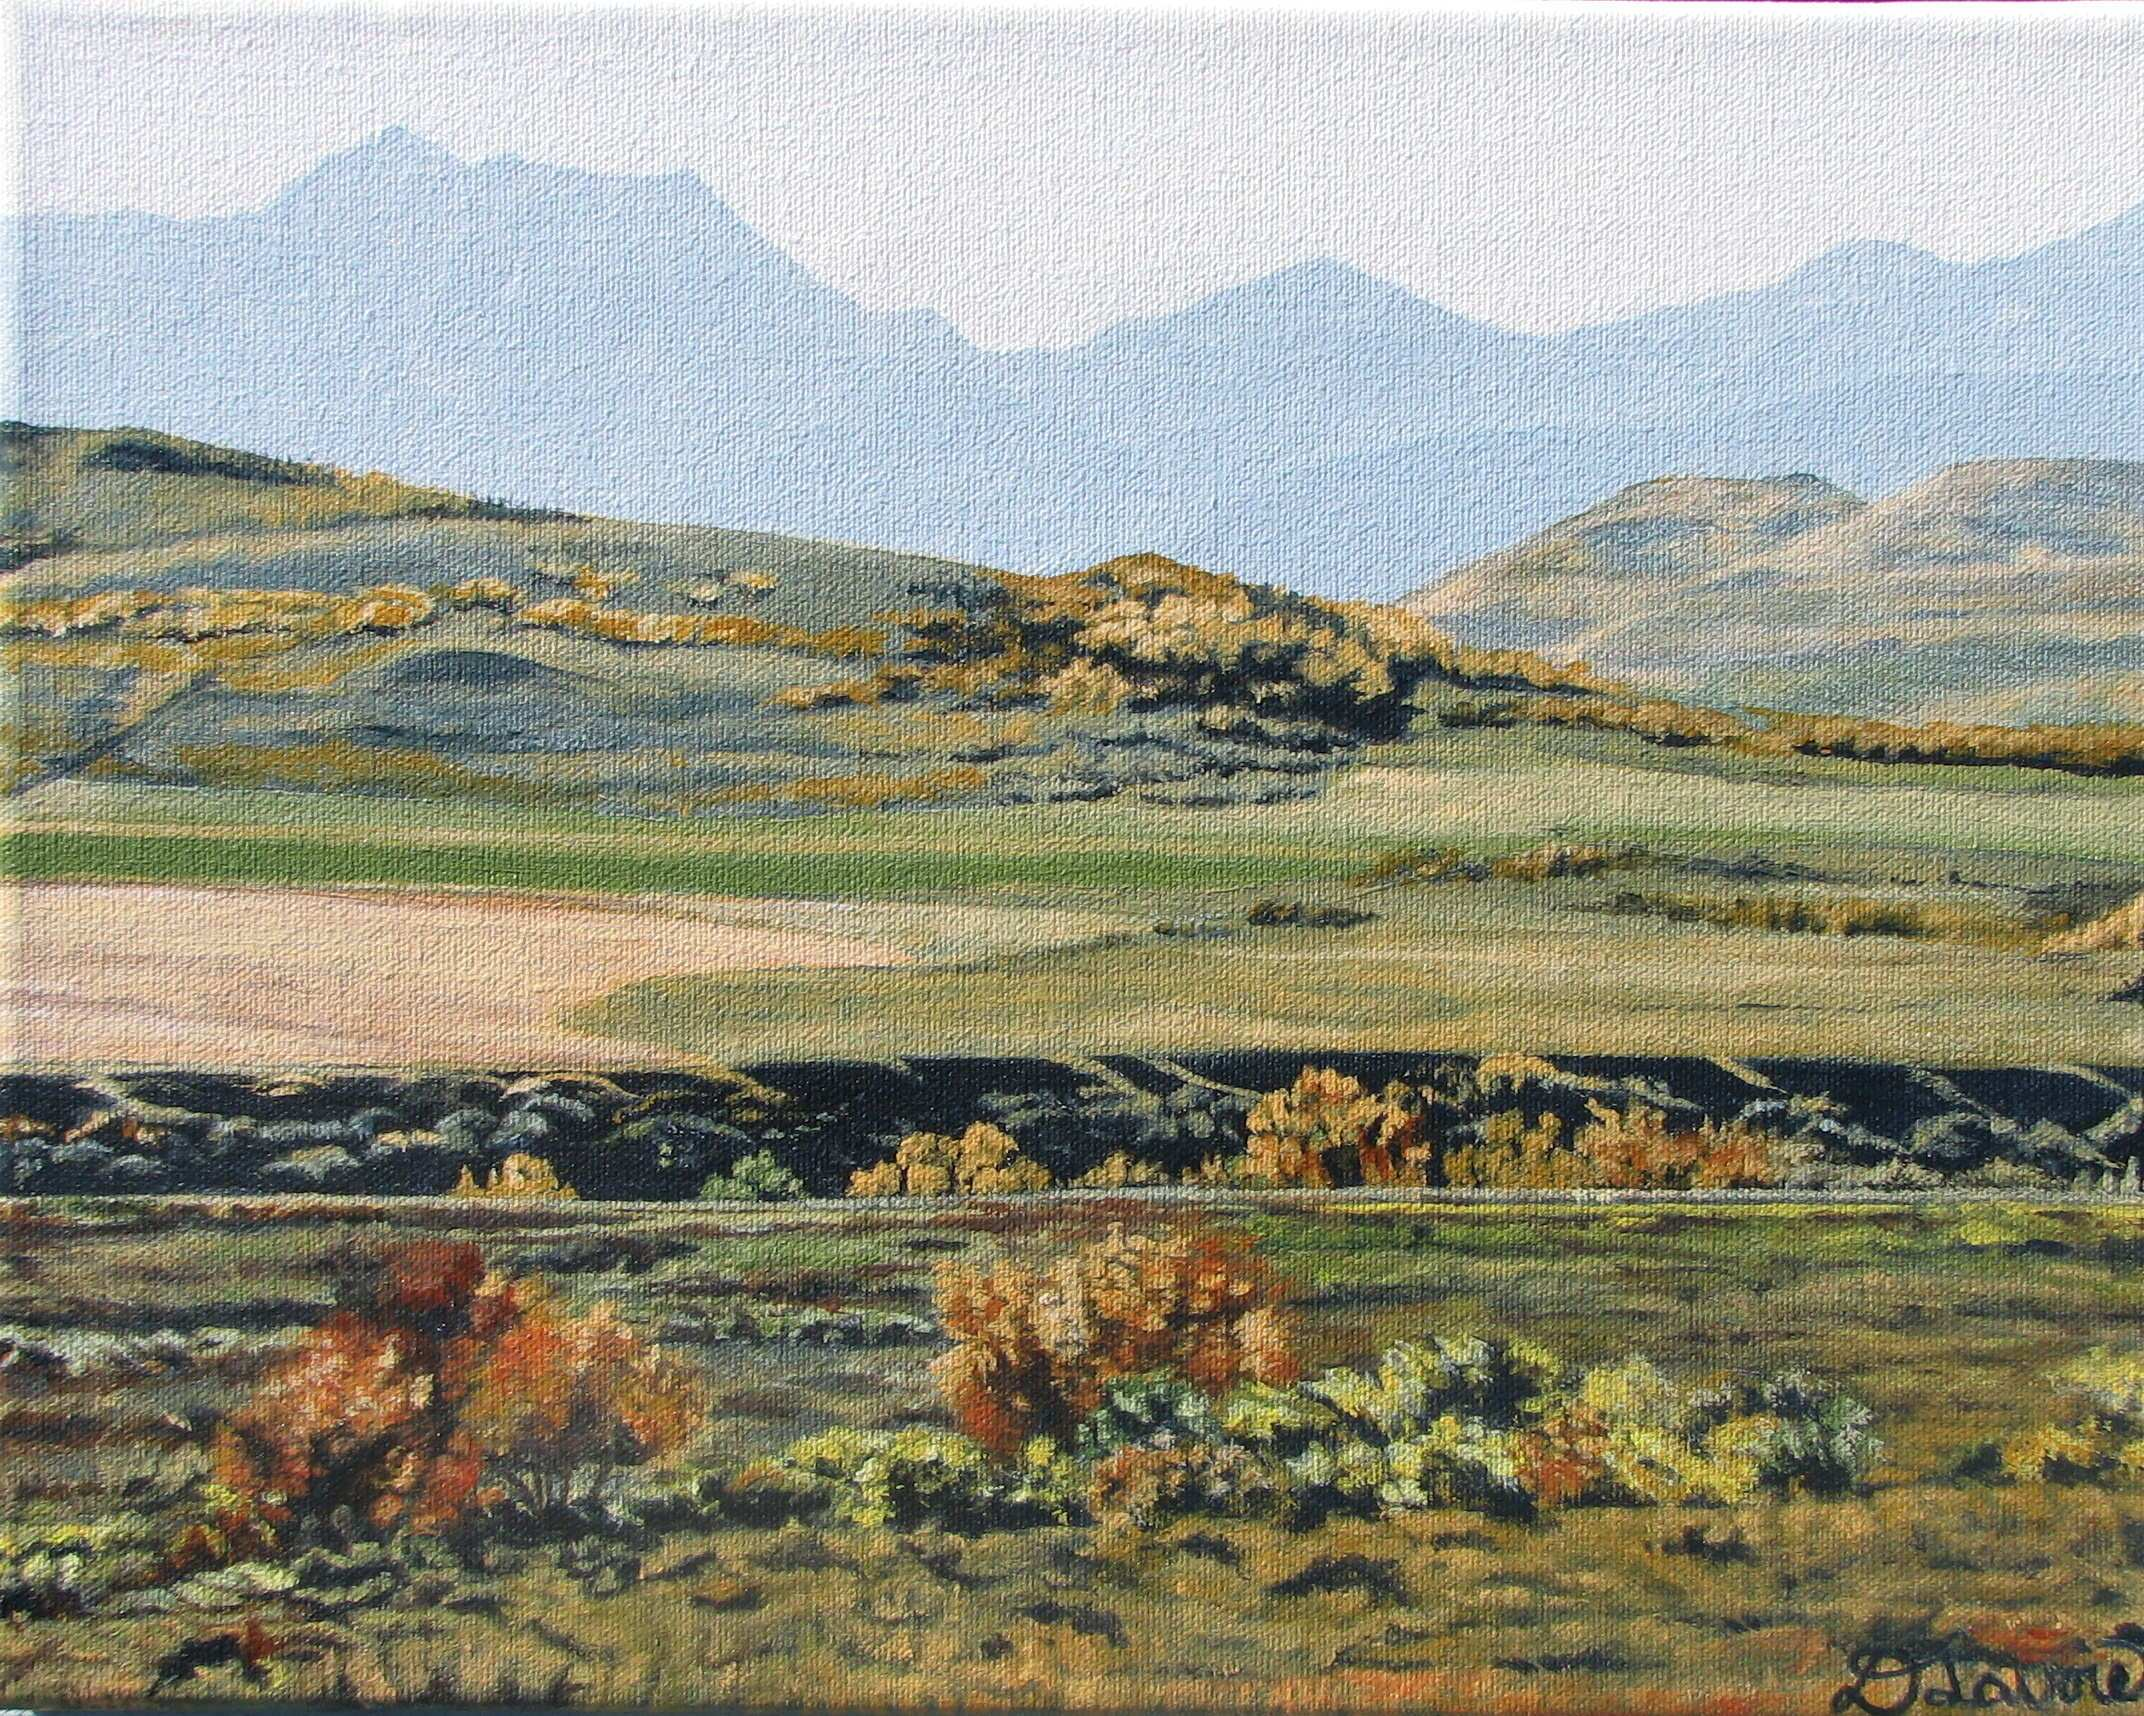 Another Foothills Autumn - Acrylic on Canvas - 11